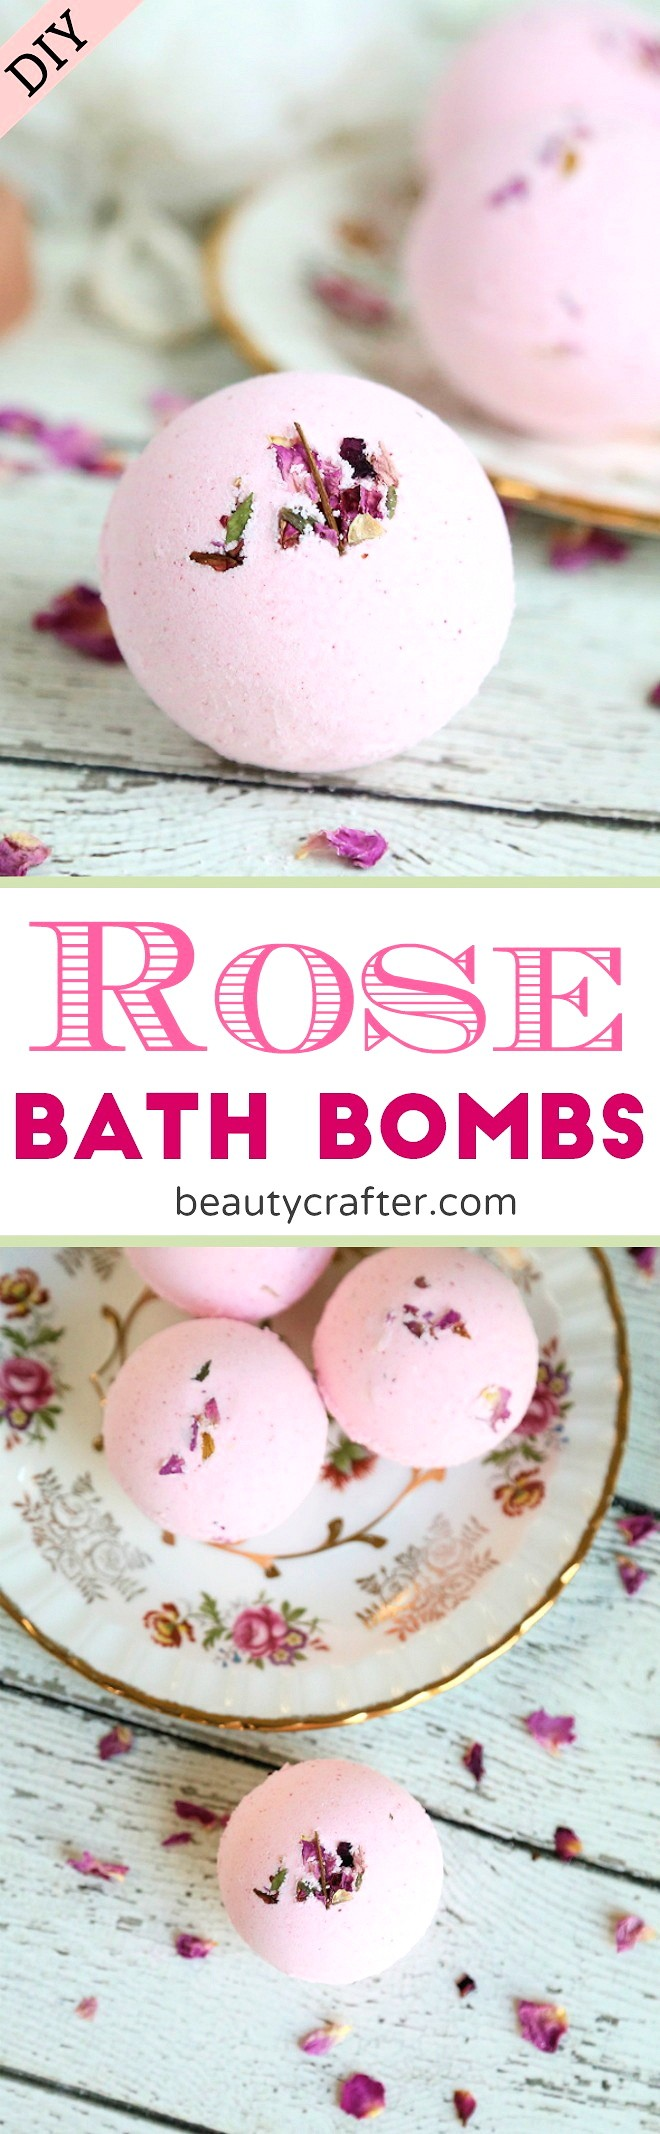 DIY Rose Bath Bombs recipe #bathbombs #rose #roses #romance #bridal #valentines